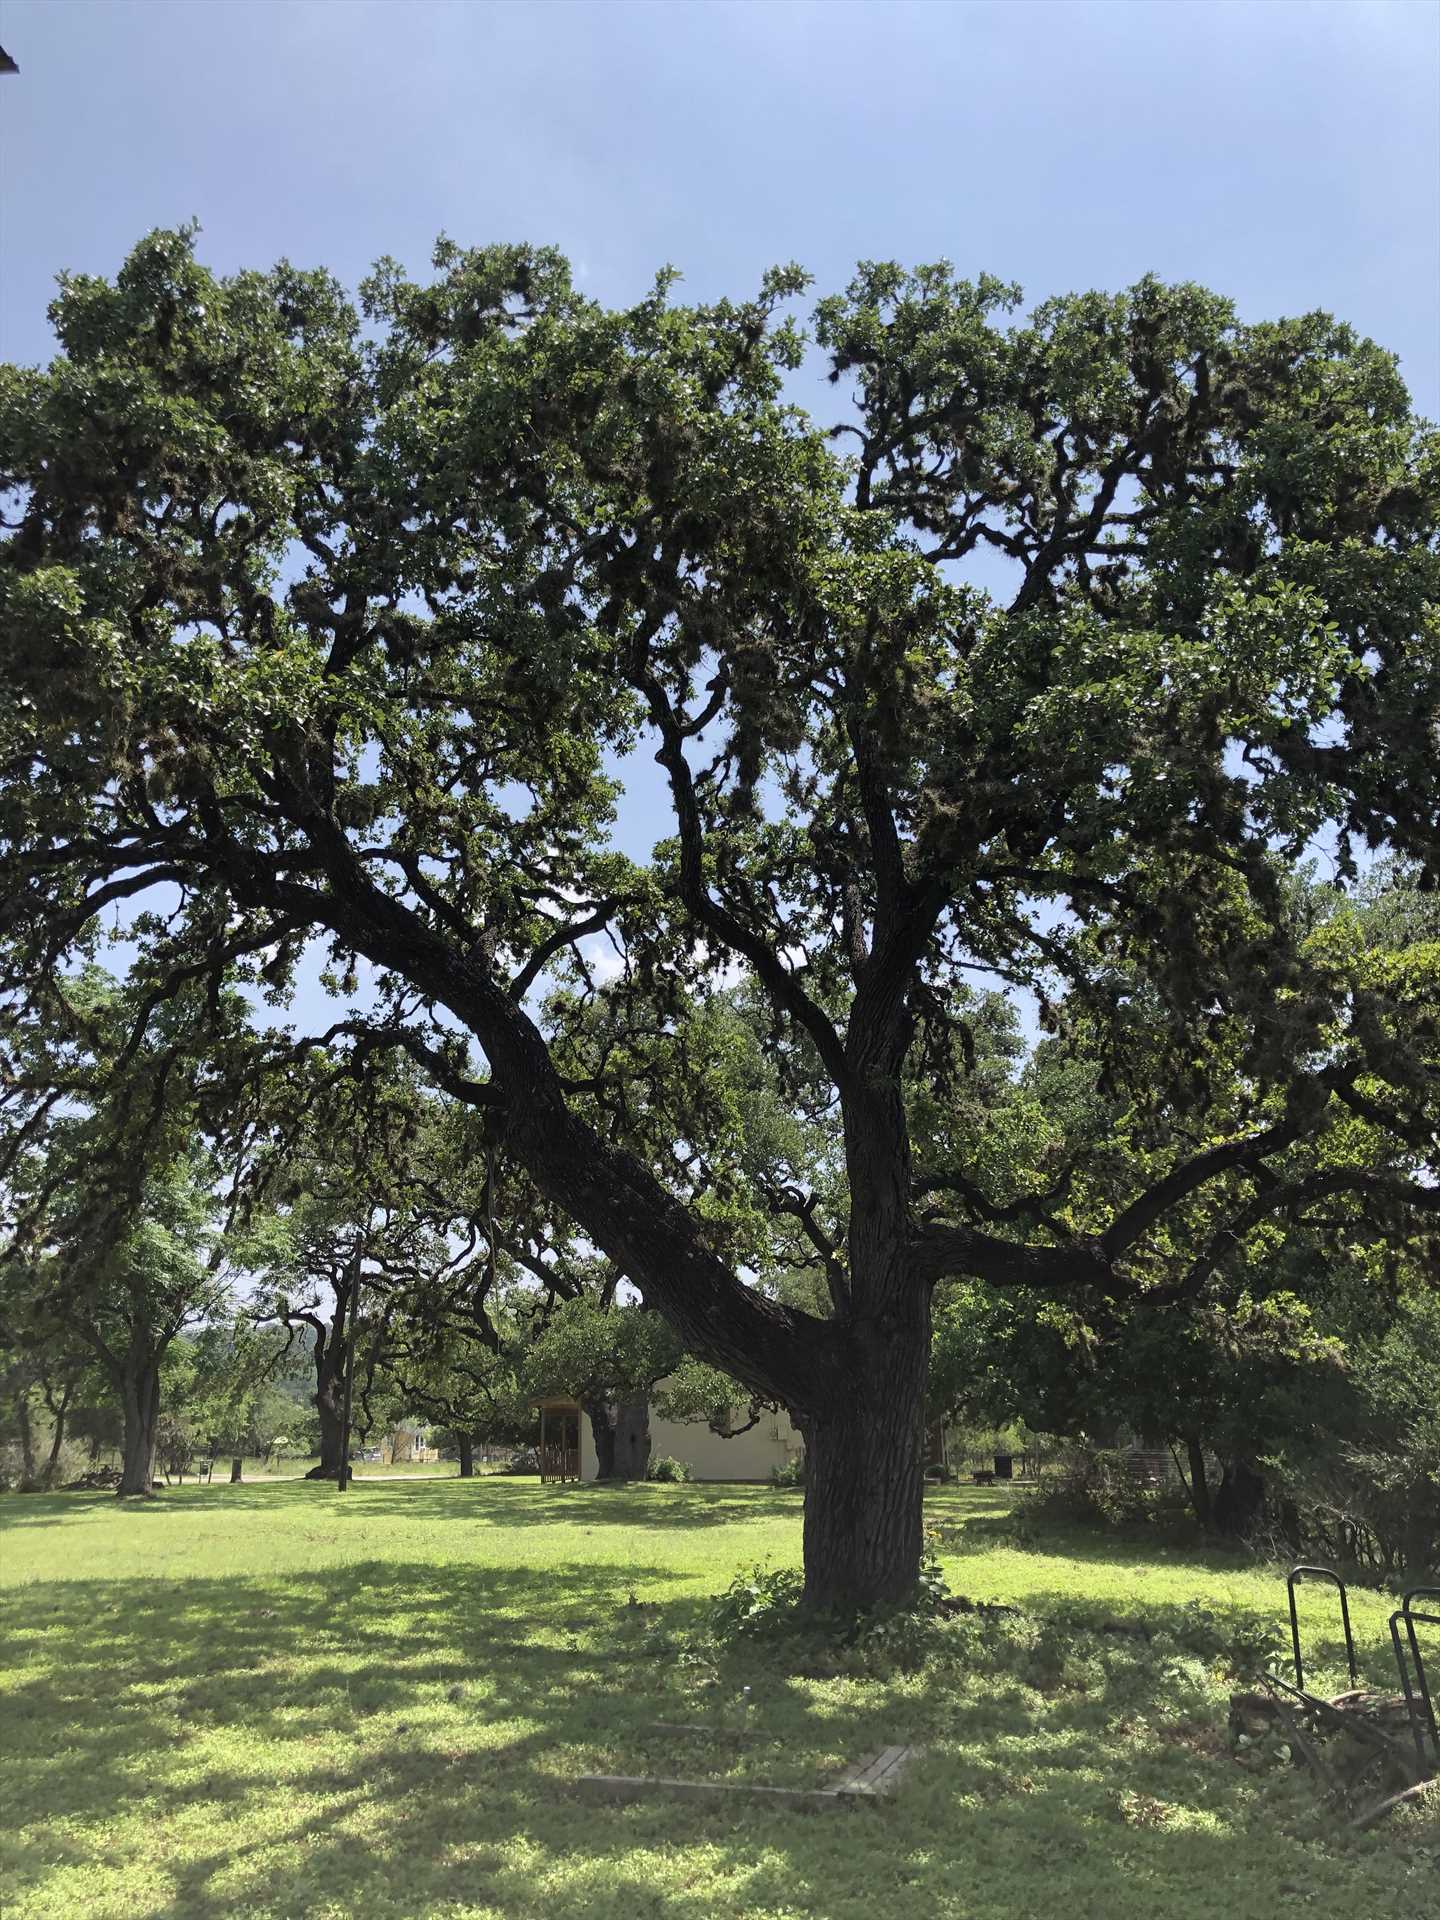 Plenty of oaks and other trees cover the property here. They provide the perfect setting in which you can unwind.